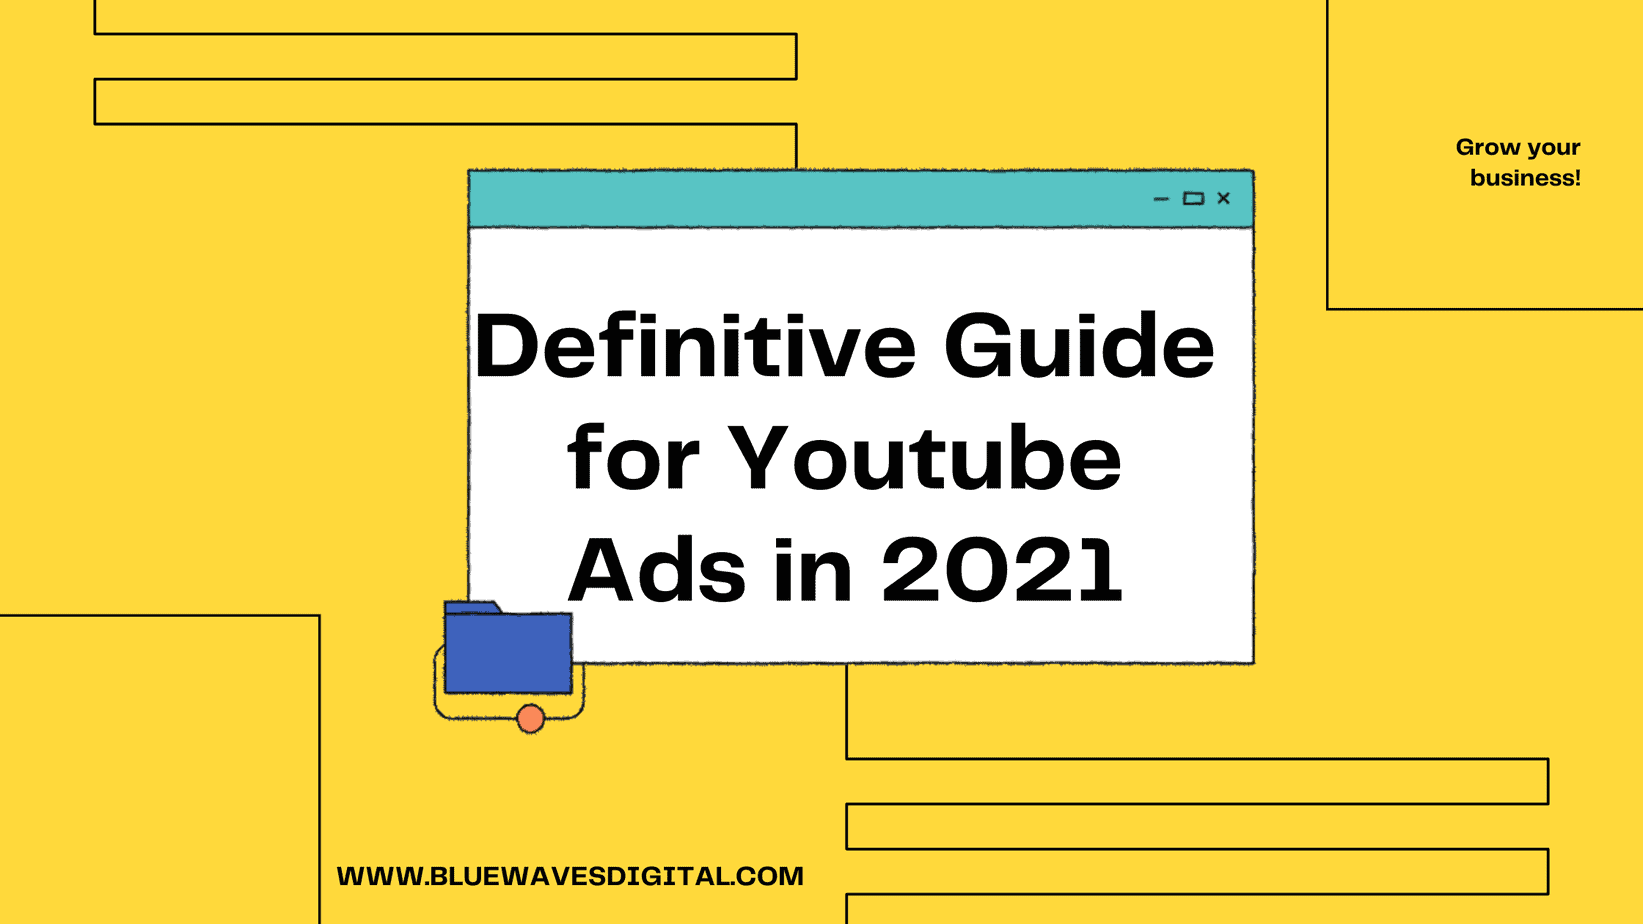 YouTube Ads - The Definitive Guide For 2021